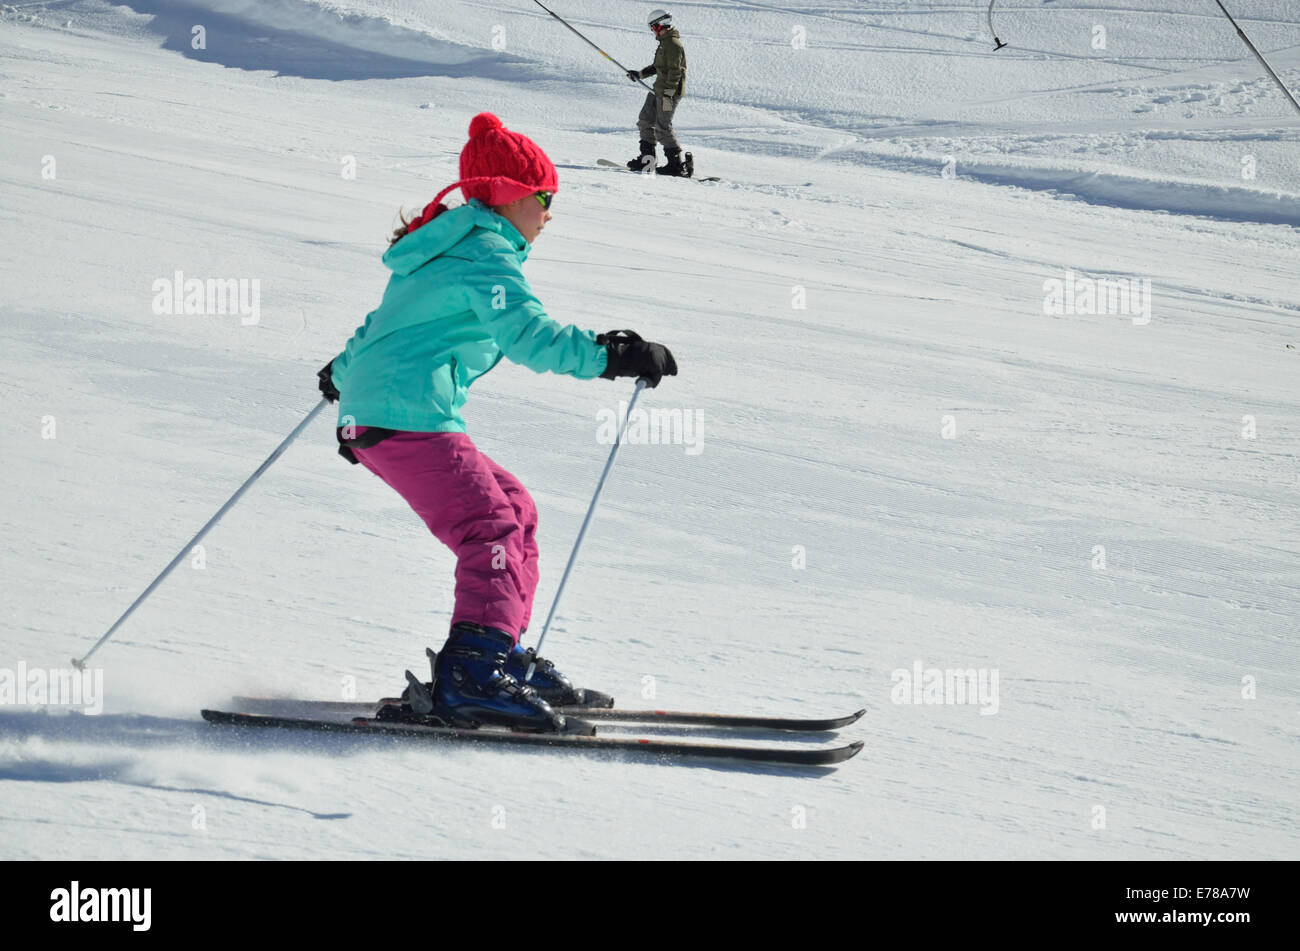 Youth skier on the piste - Stock Image